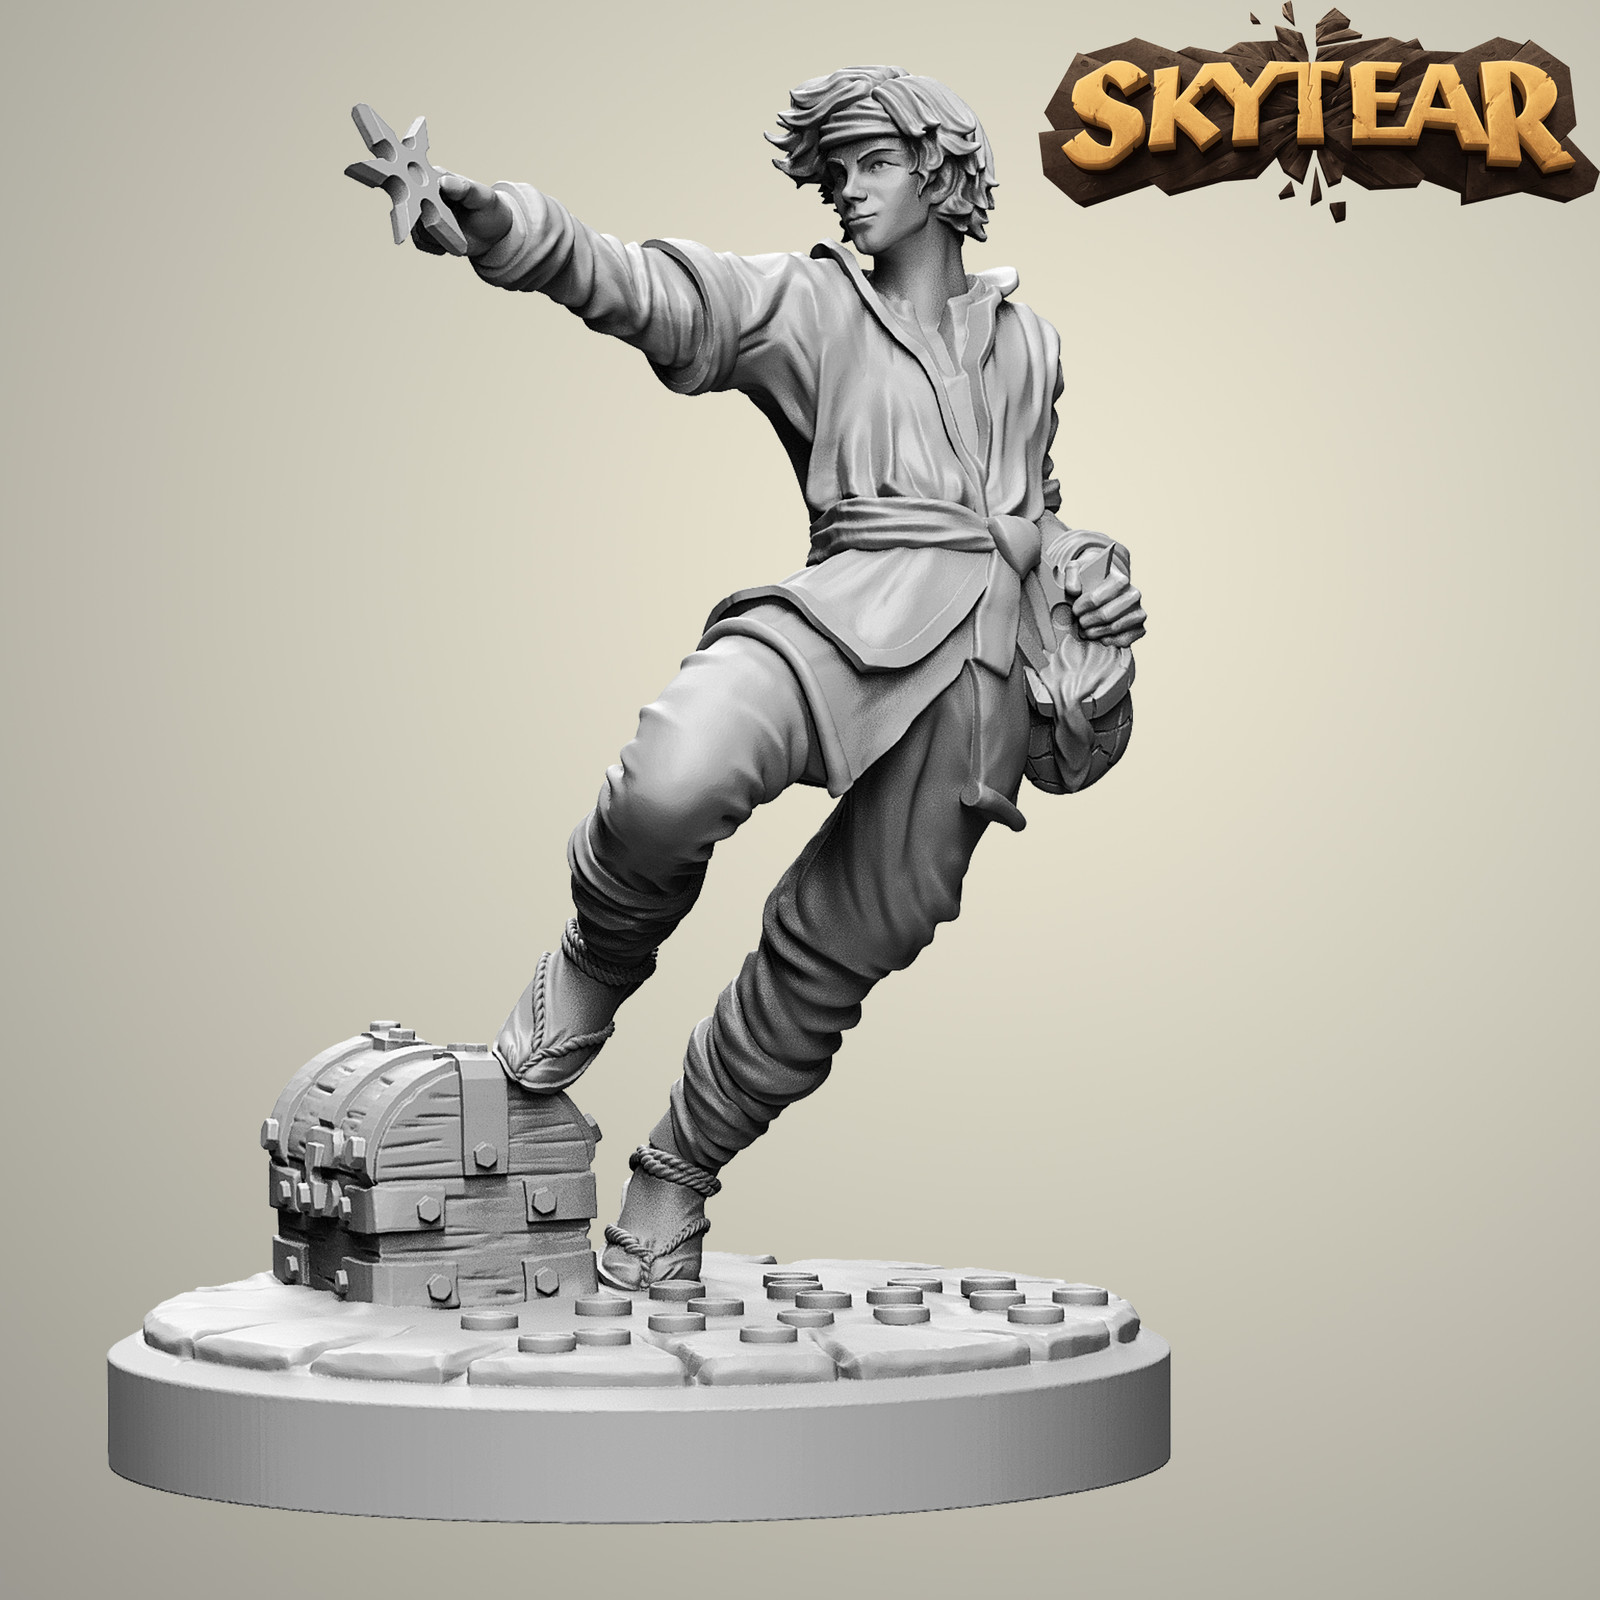 Skytear board game miniatures - Sakoshi